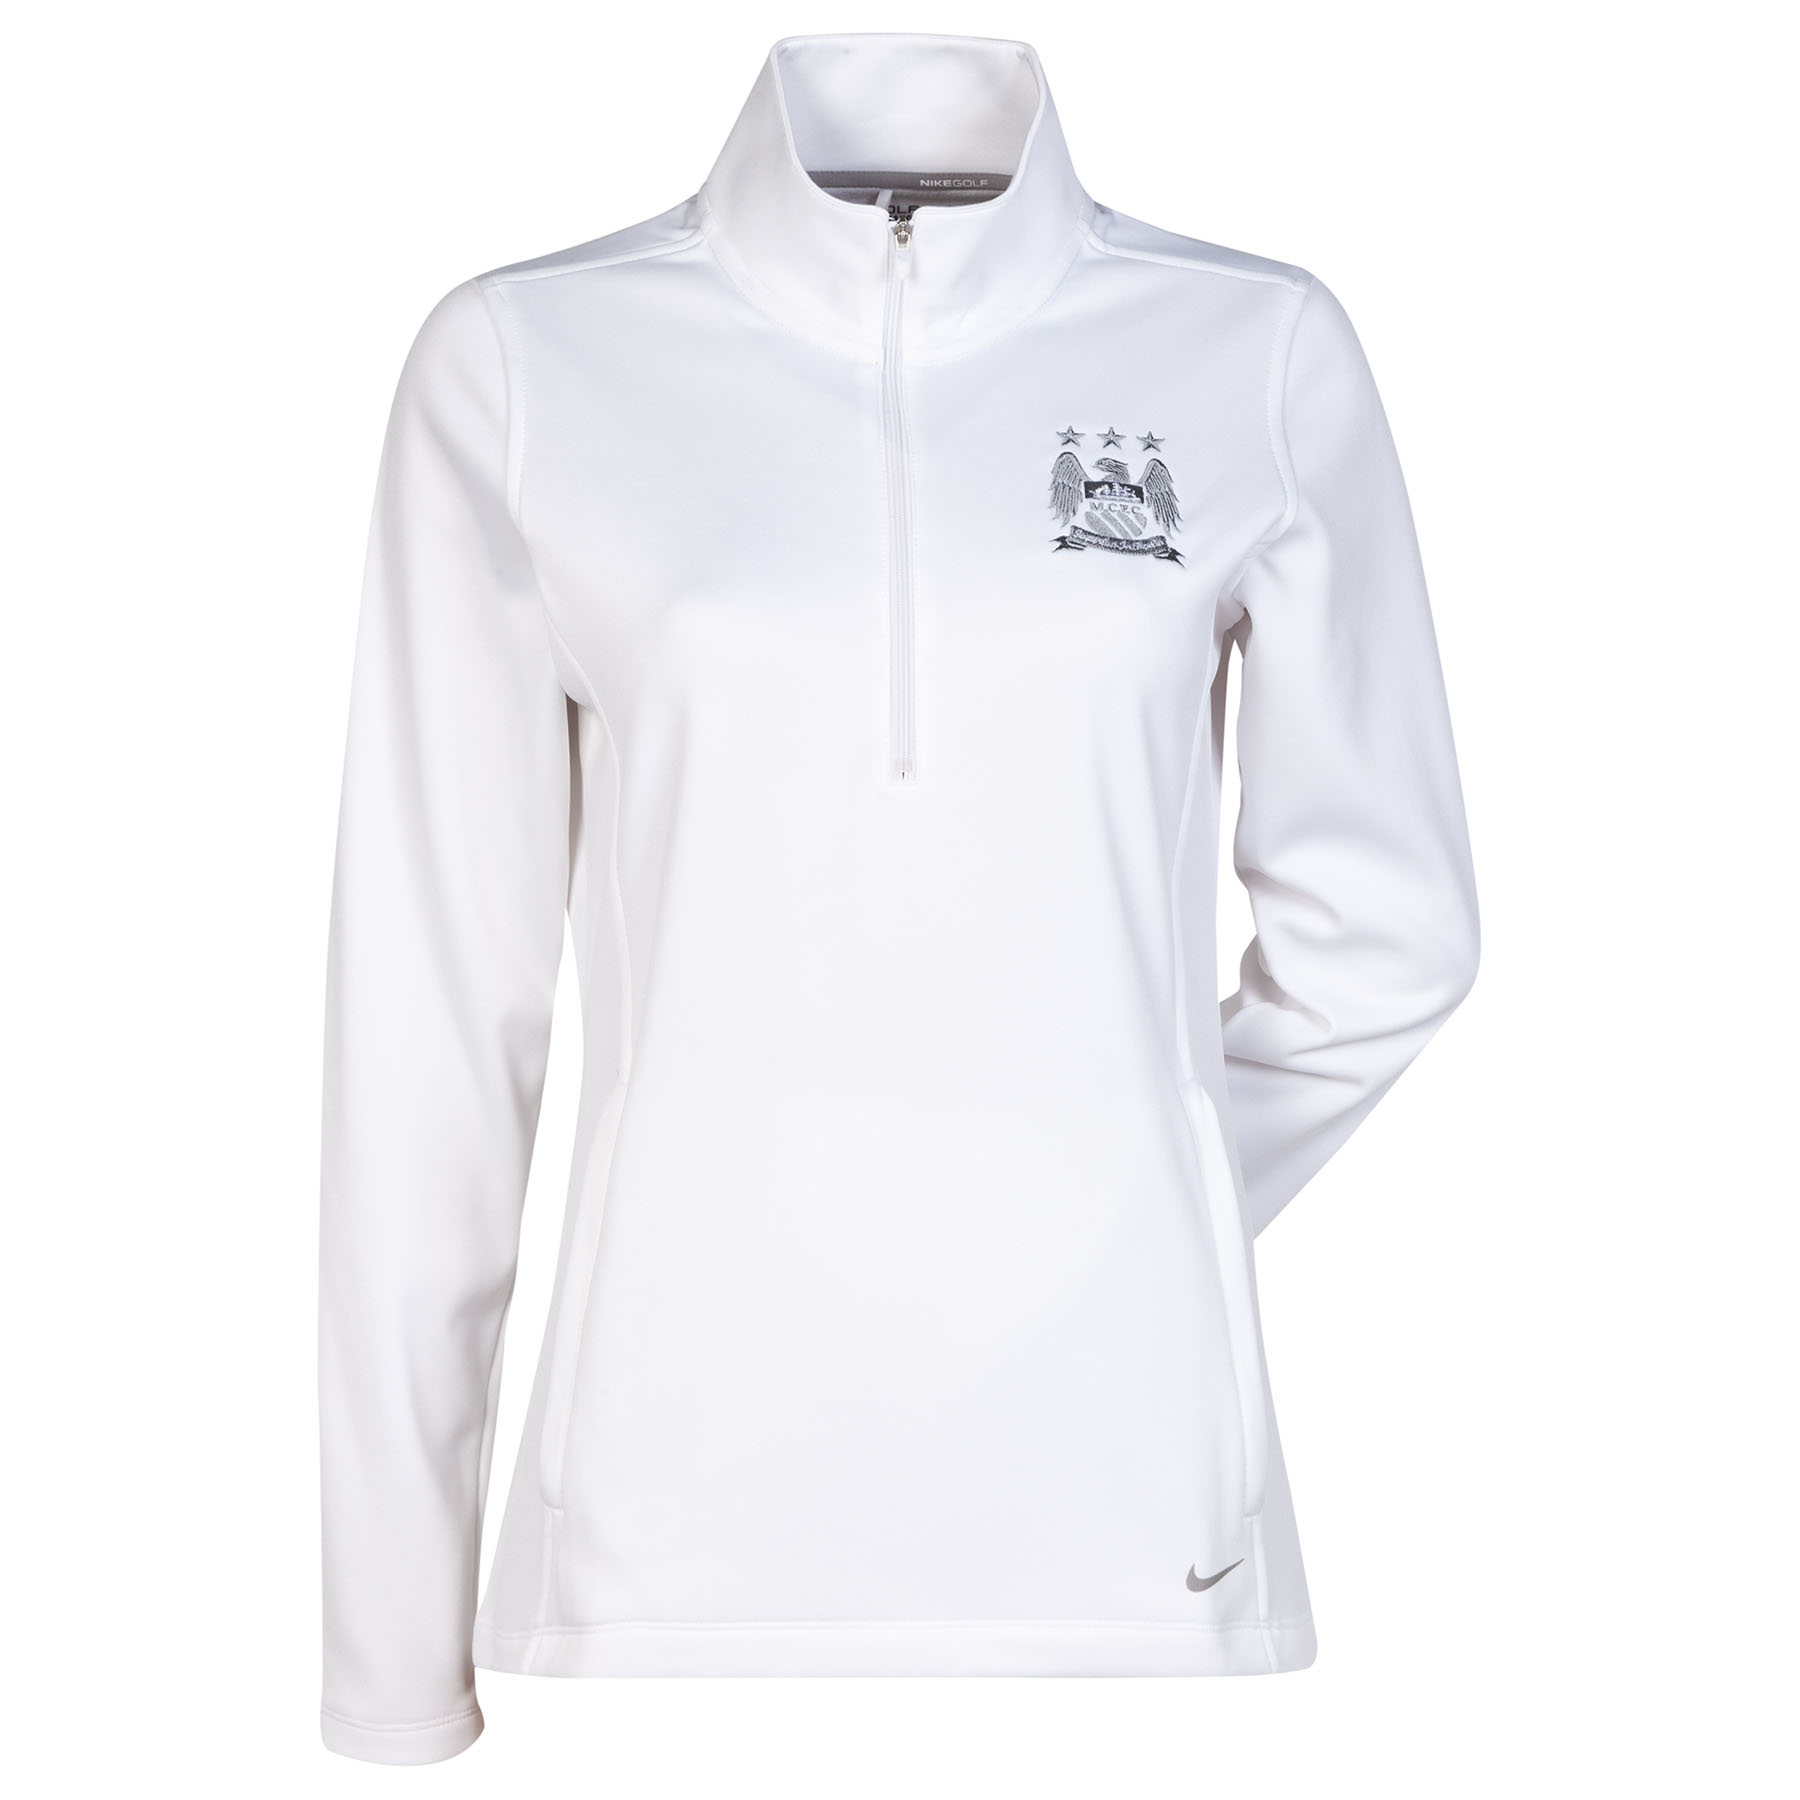 Manchester City Thermal Half Zip Top - Womens White